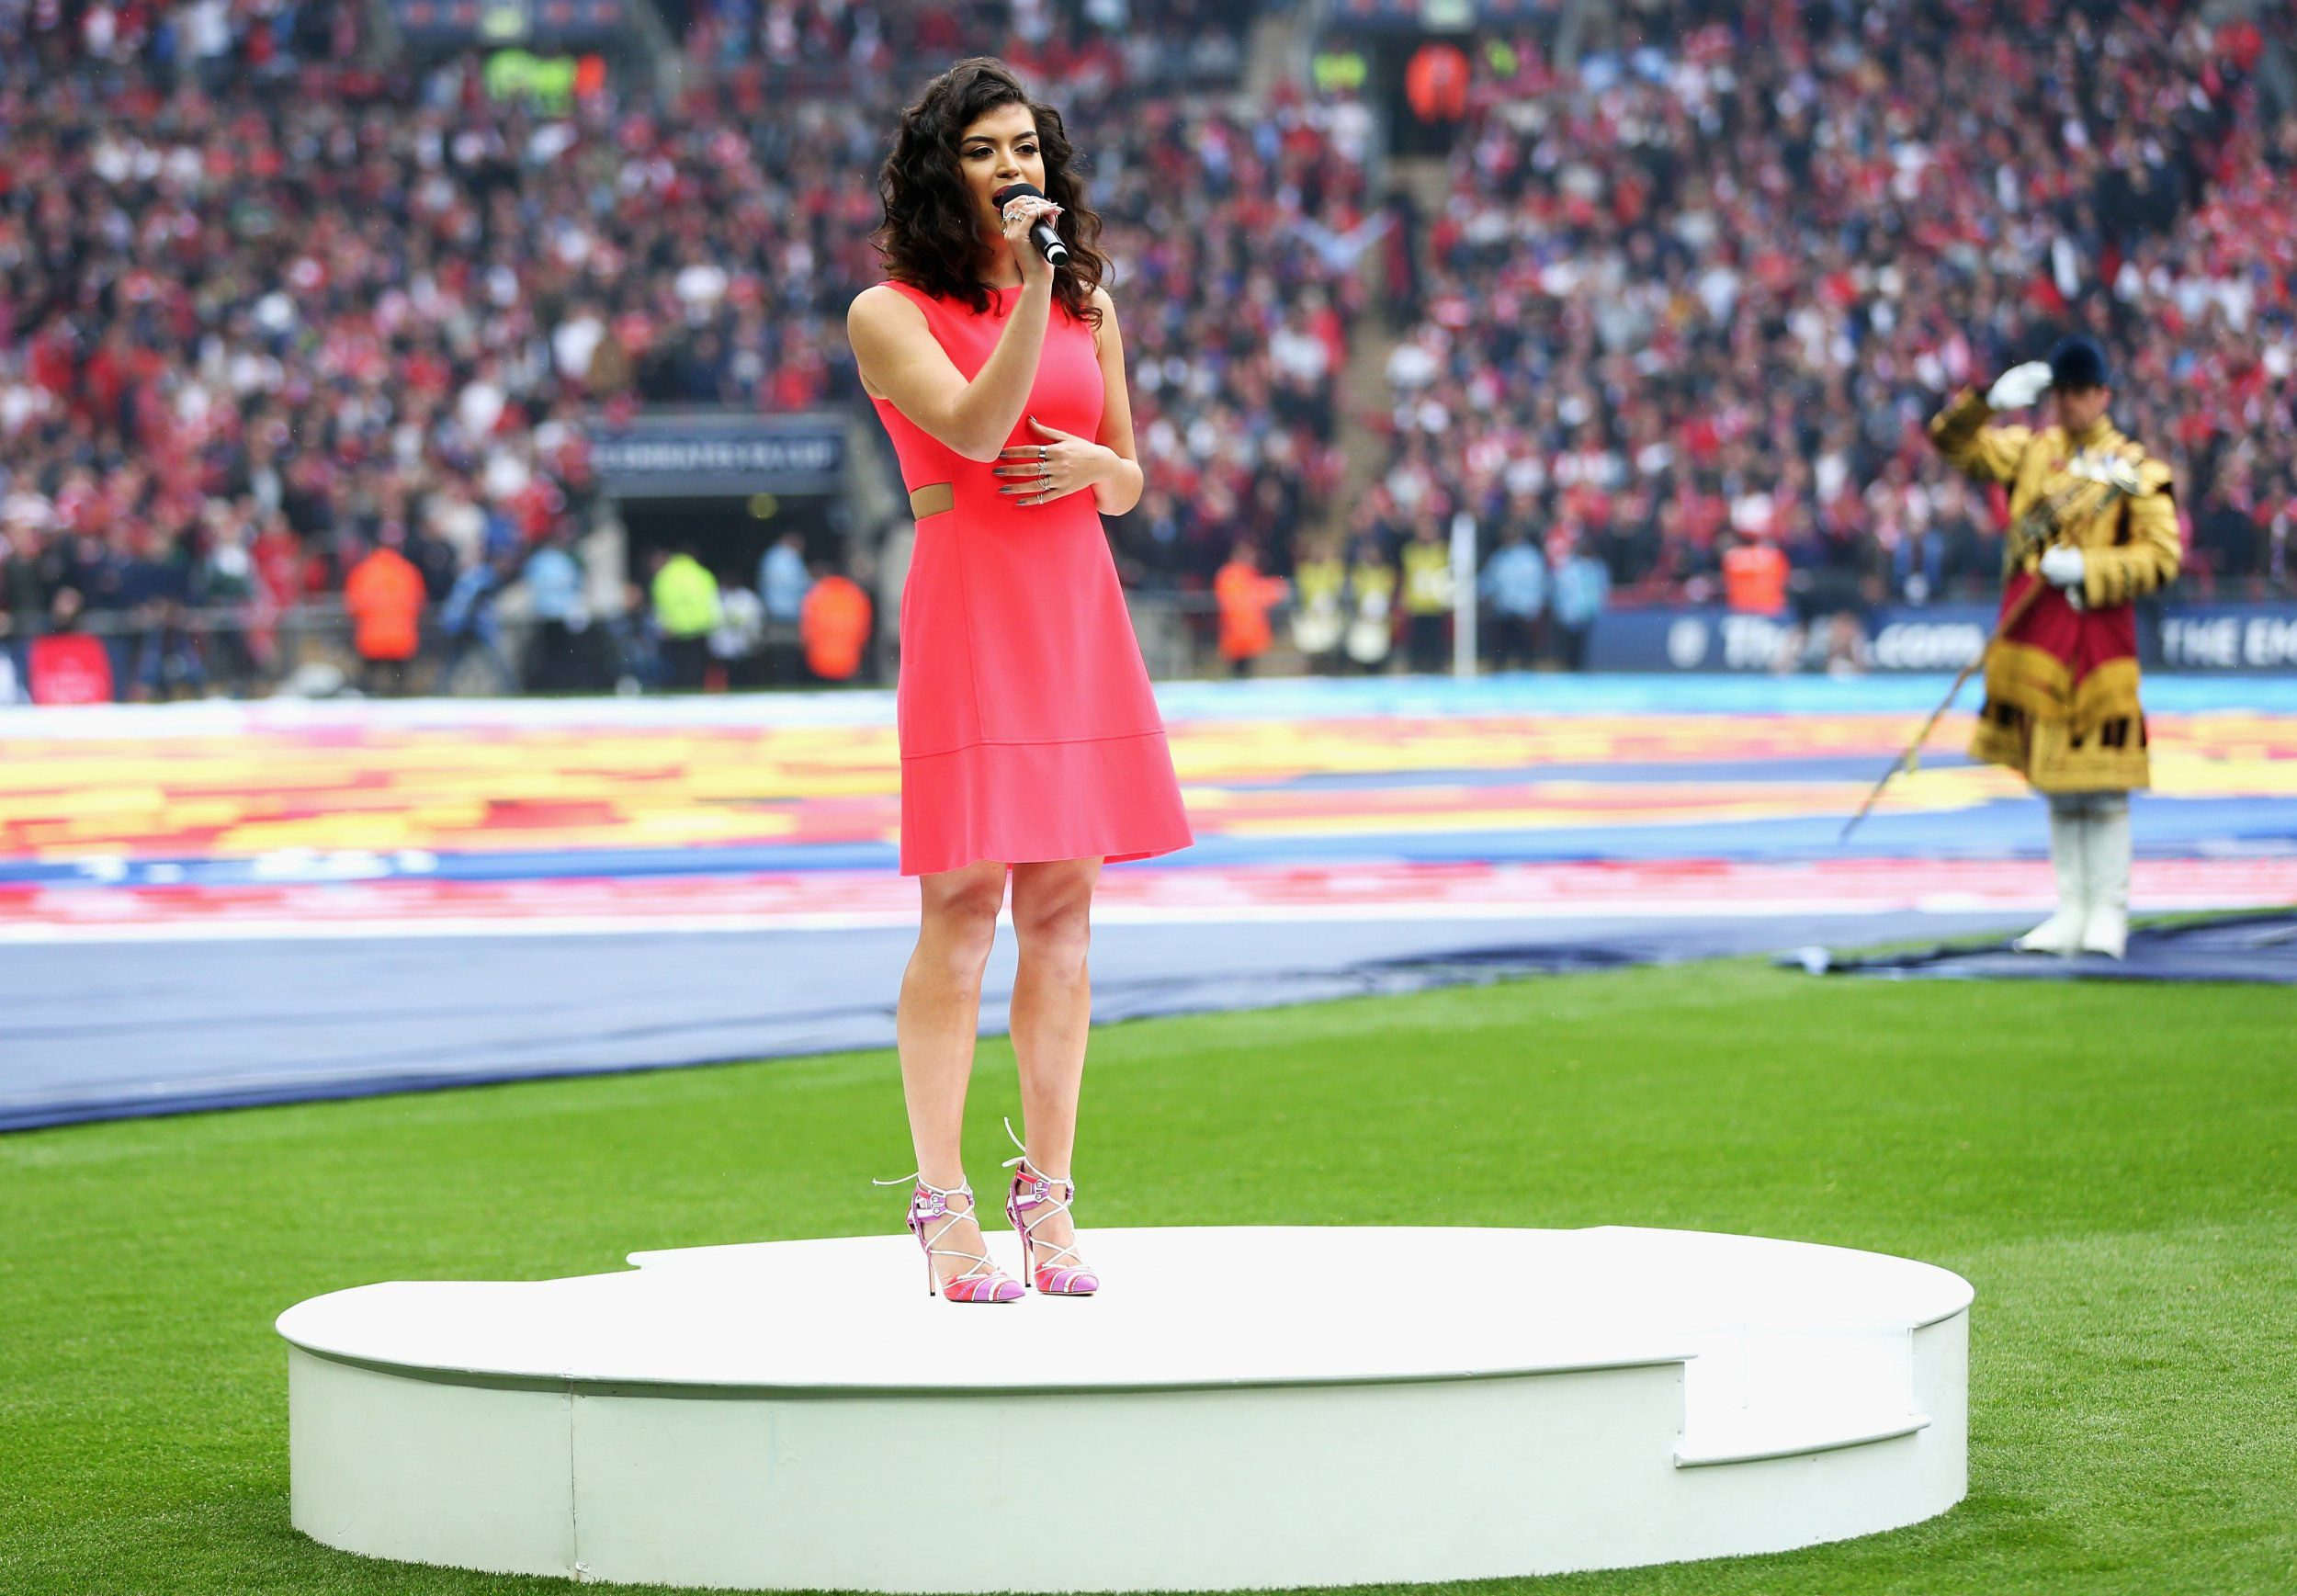 LONDON, ENGLAND - MAY 21:  Karen Harding performs the national anthem prior to The Emirates FA Cup Final match between Manchester United and Crystal Palace at Wembley Stadium on May 21, 2016 in London, England.  (Photo by Alex Morton - The FA/The FA via Getty Images)